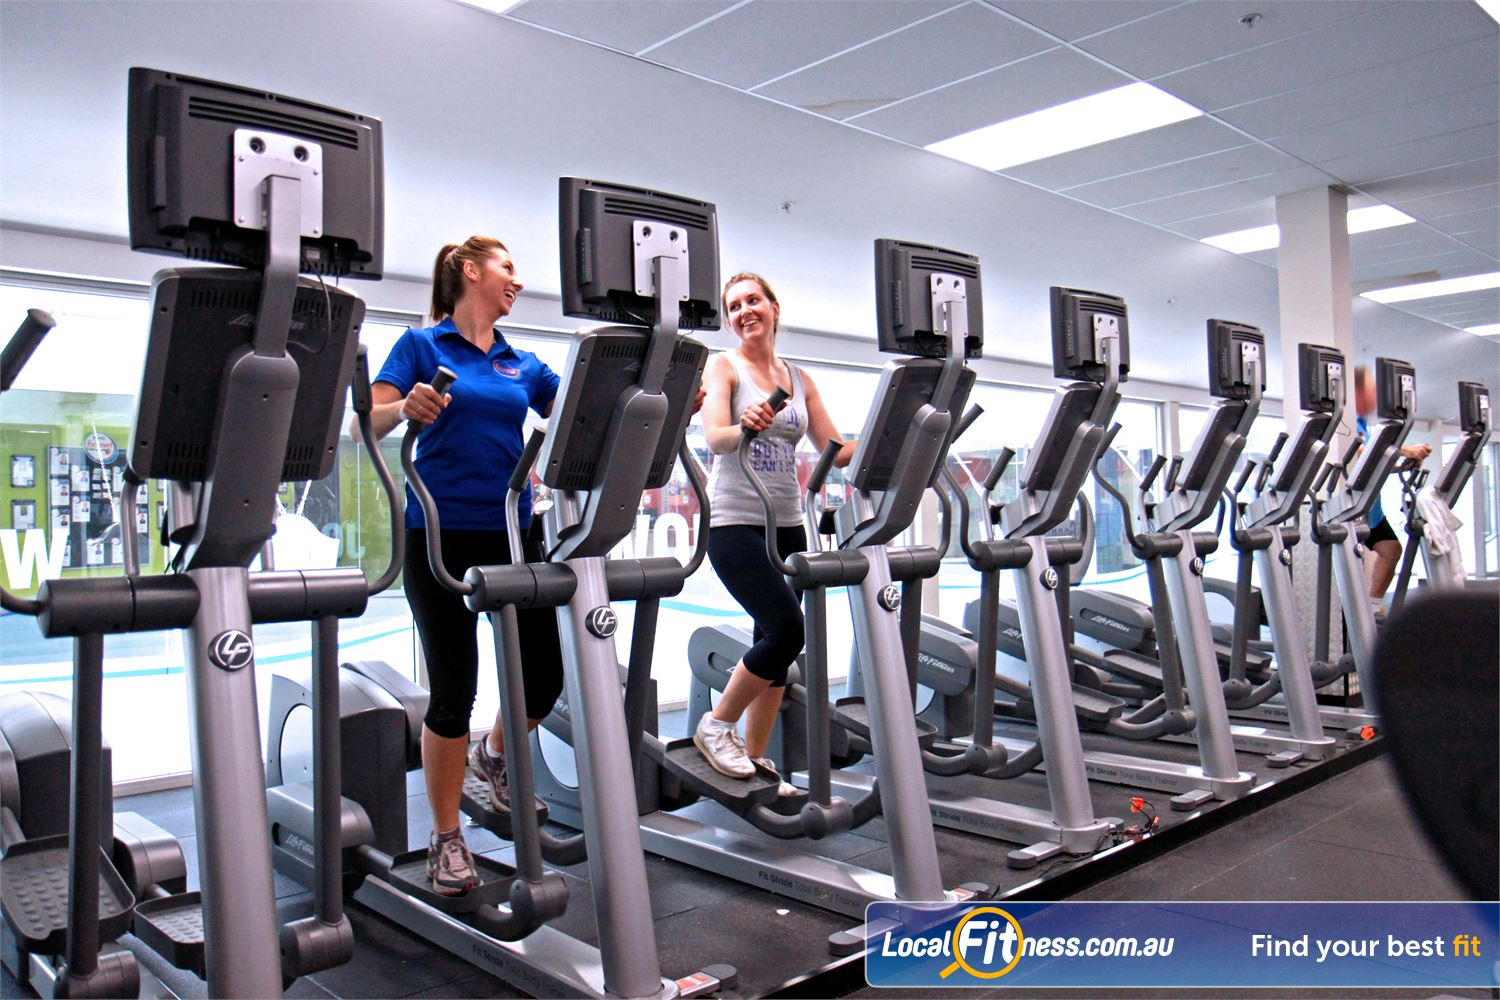 Goodlife Health Clubs North Adelaide Goodlife North Adelaide gym provides multiple machines so you don't have to wait.